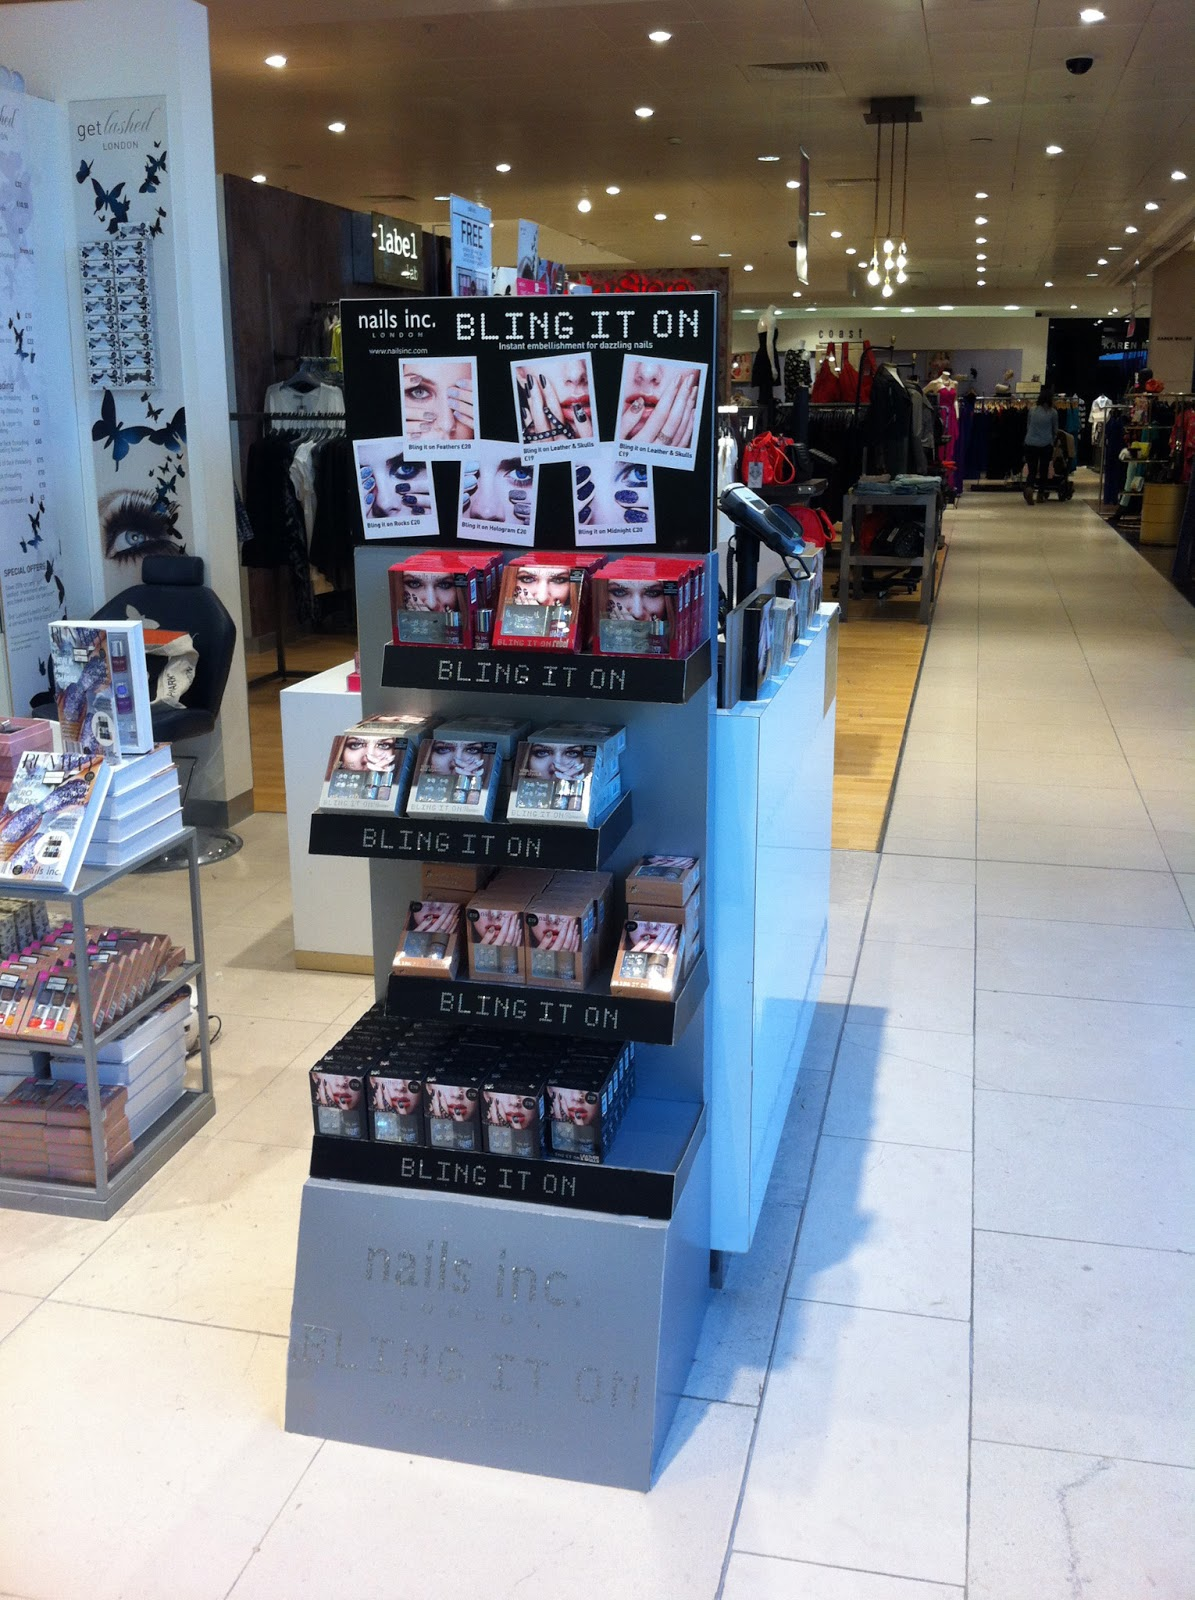 001f36adfb LATEST IN-STORE CAMPAIGN BY NAILS INC. CHALLENGES SHOPPERS TO  BLING IT ON